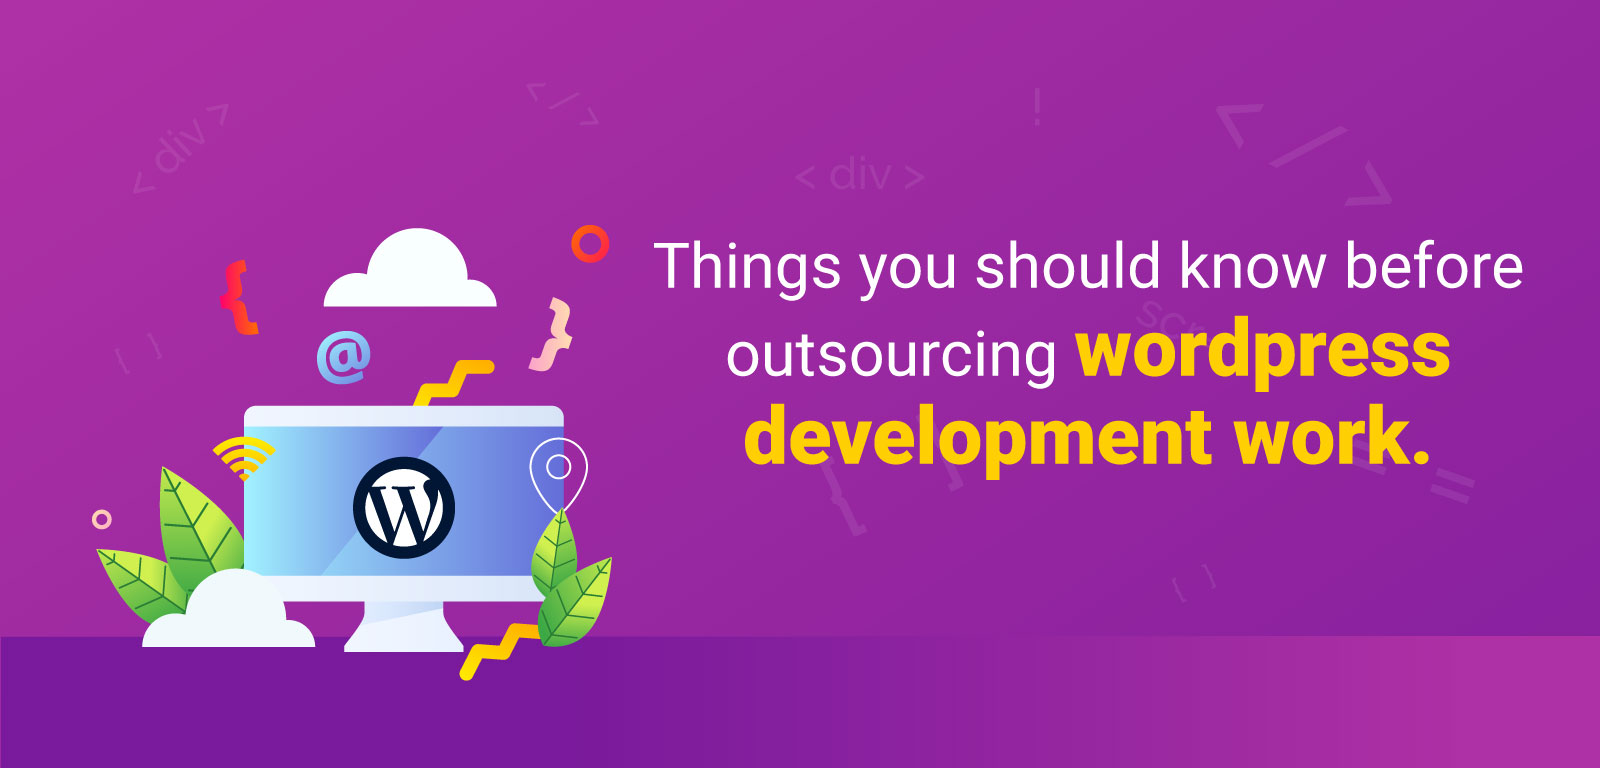 Things you should know before outsourcing wordpress development work